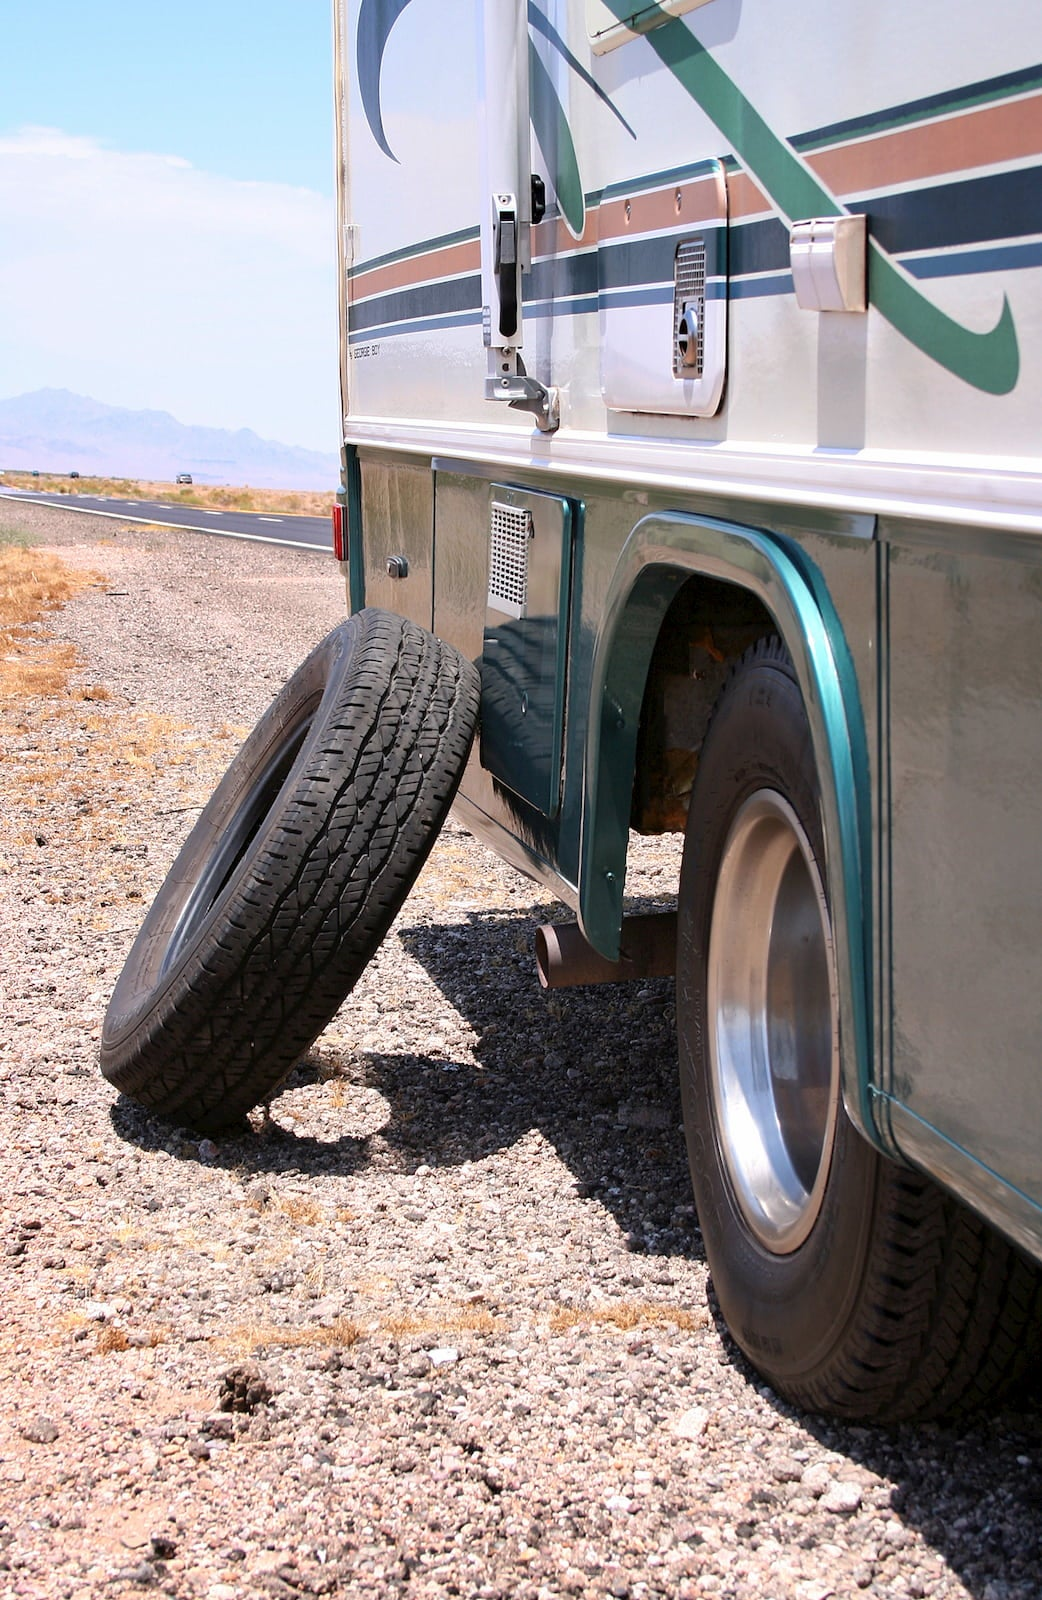 RV parked on the side of the road with tire leaning against it.